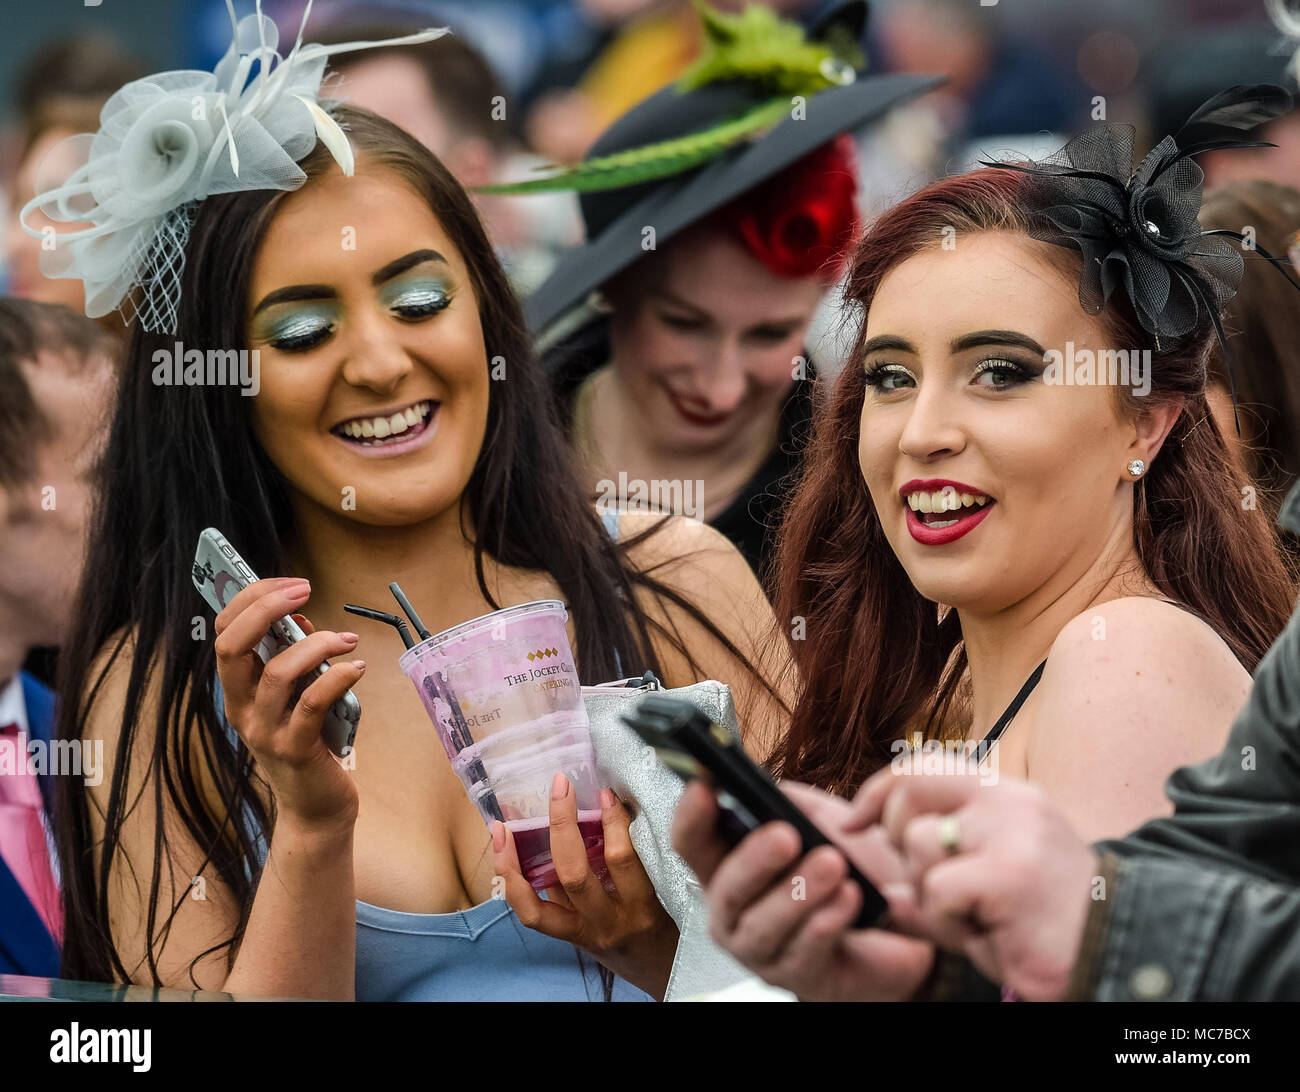 Aintree, Liverpool, Merseyside, UK. 13th April 2018, Aintree Racecourse, Liverpool, England; The Randox Health Grand National 2018; Race goers enjoying Ladies Day at the 2018 Grand National Credit: News Images/Alamy Live News Stock Photo